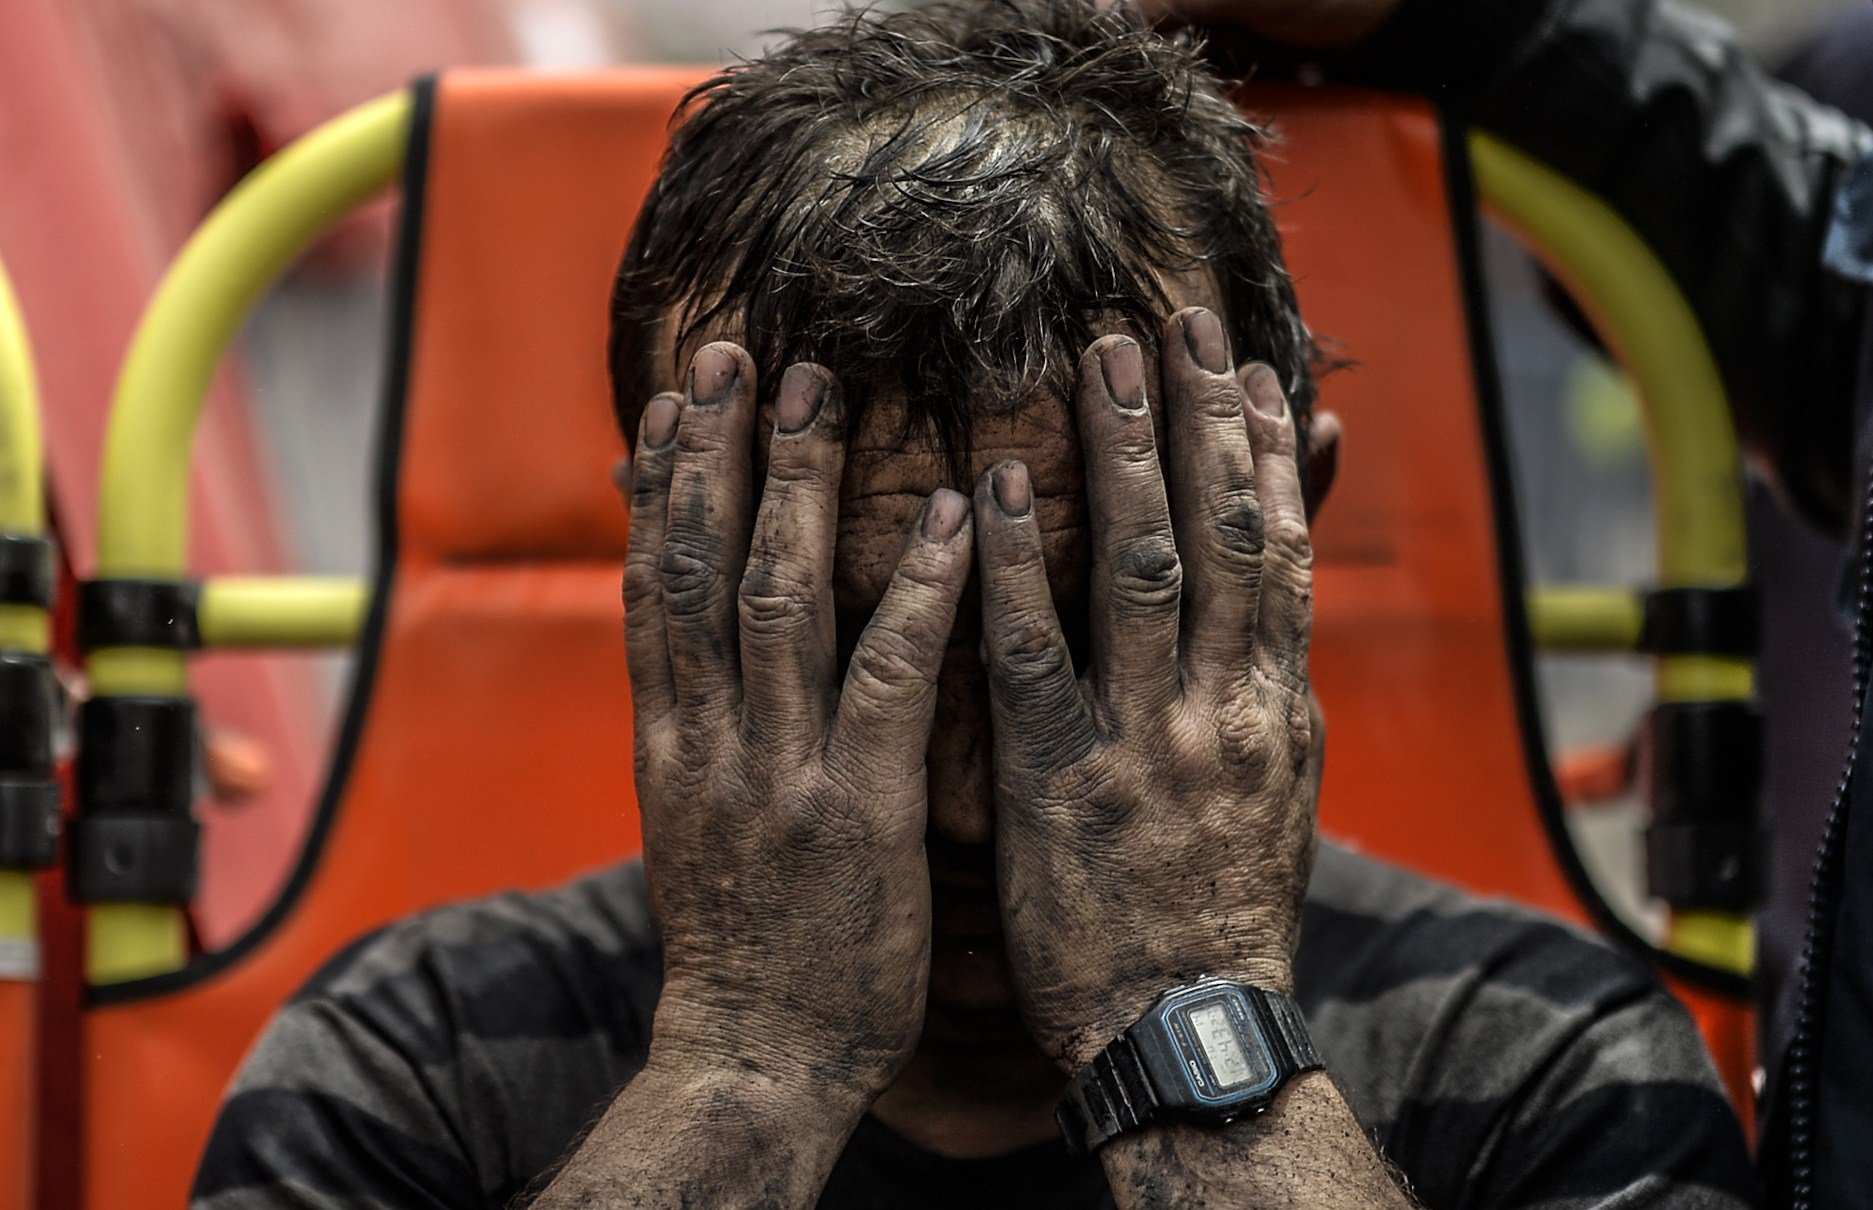 A miner reacts after being affected with toxic gas while searching for co-workers who remain trapped underground on May 14, 2014 after an explosion and fire in their coal mine in the western Turkish province of Manisa.